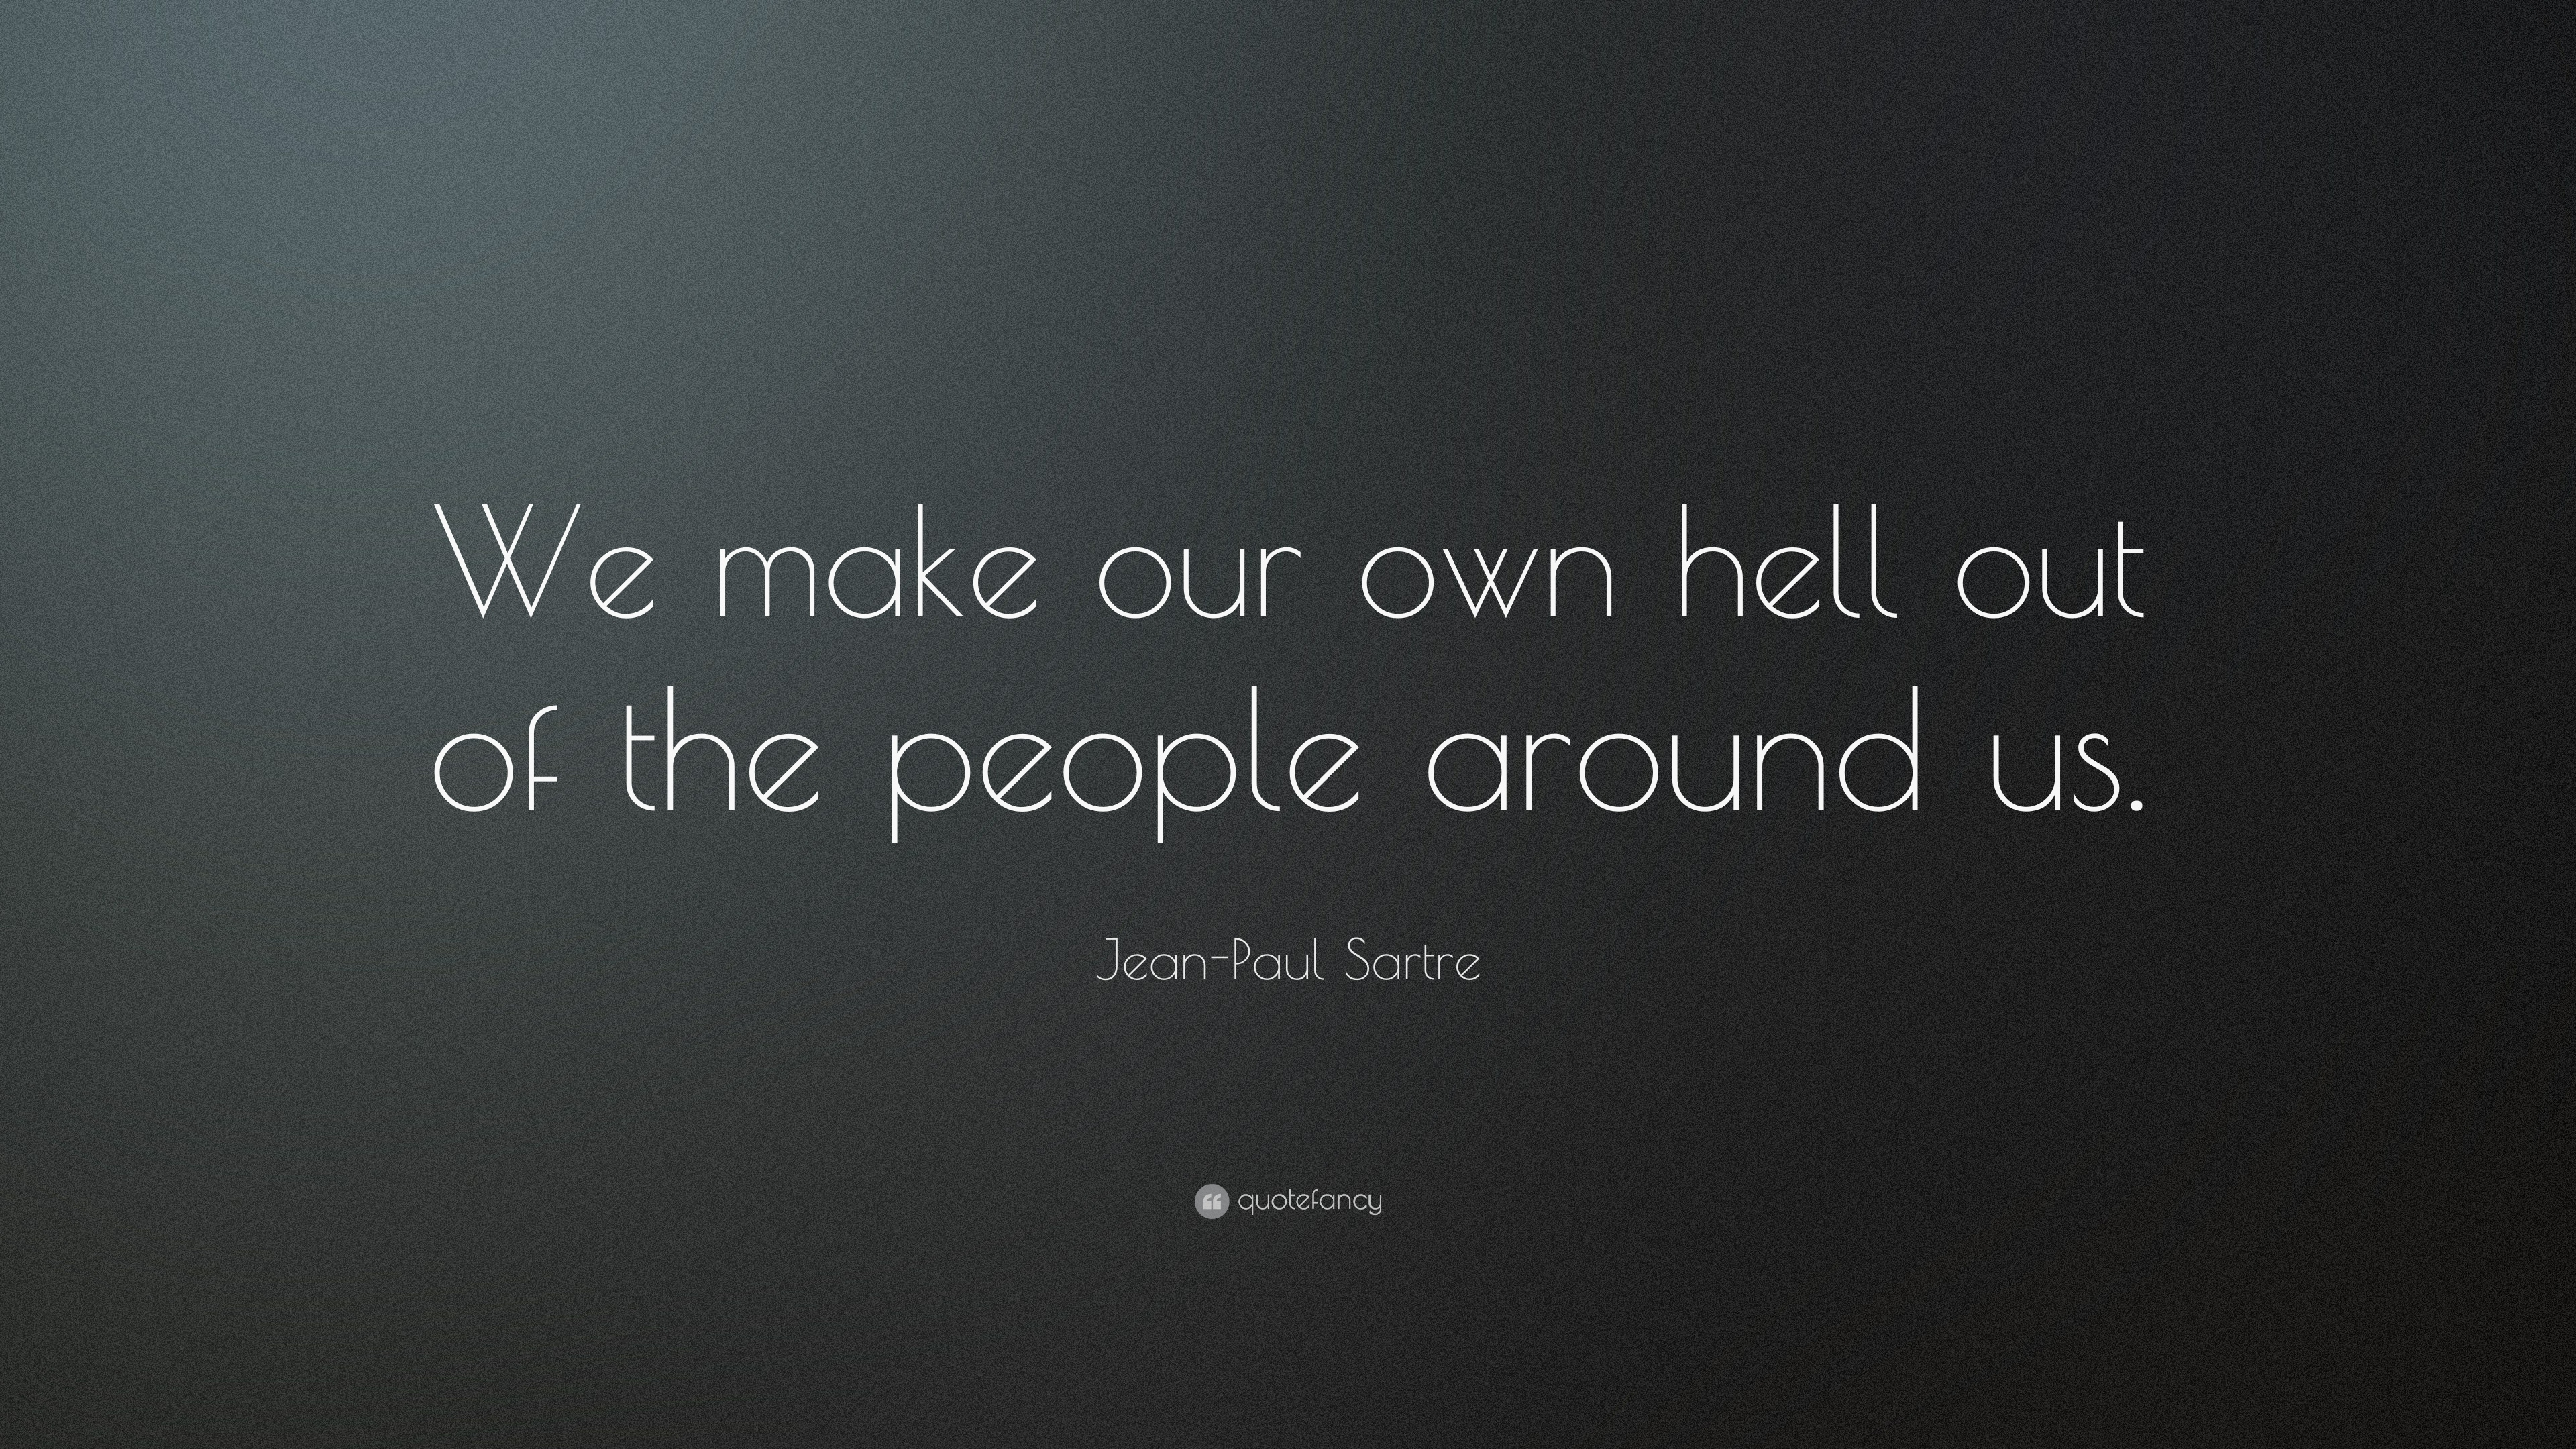 Kant Quotes Wallpaper Jean Paul Sartre Quotes 100 Wallpapers Quotefancy